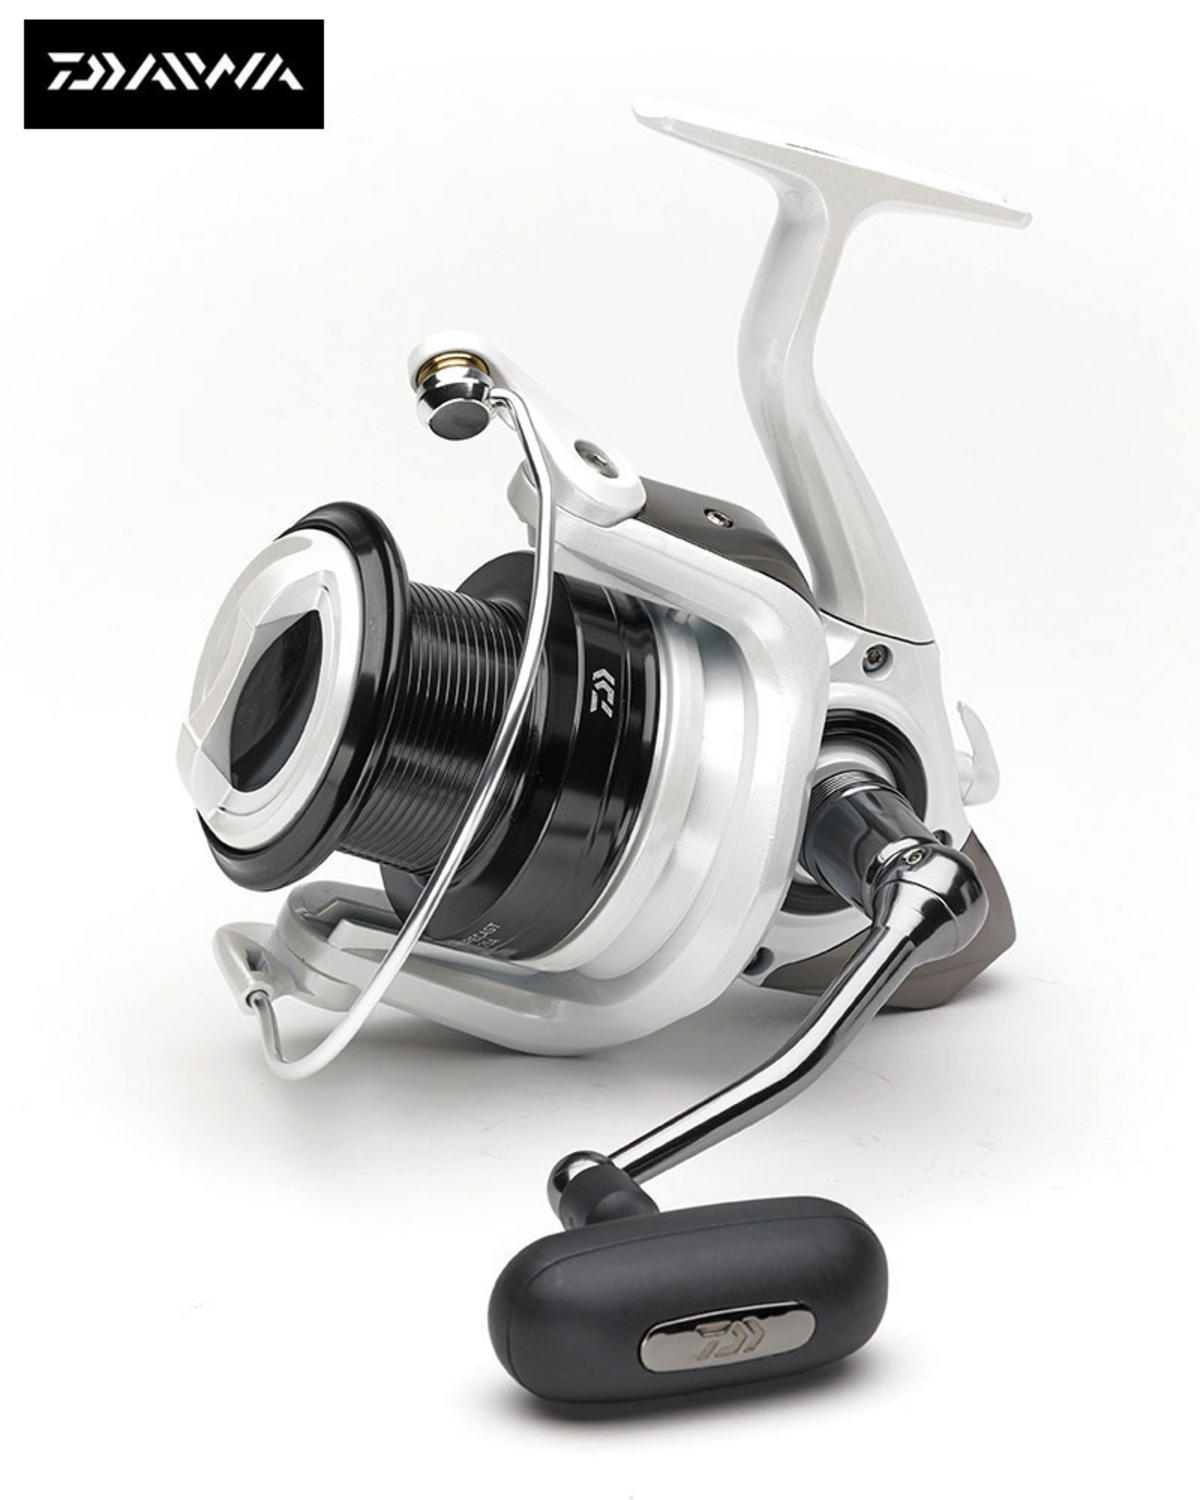 New Daiwa Shorecast 25A Bass / Surf Fishing Reel Model No. SC25A